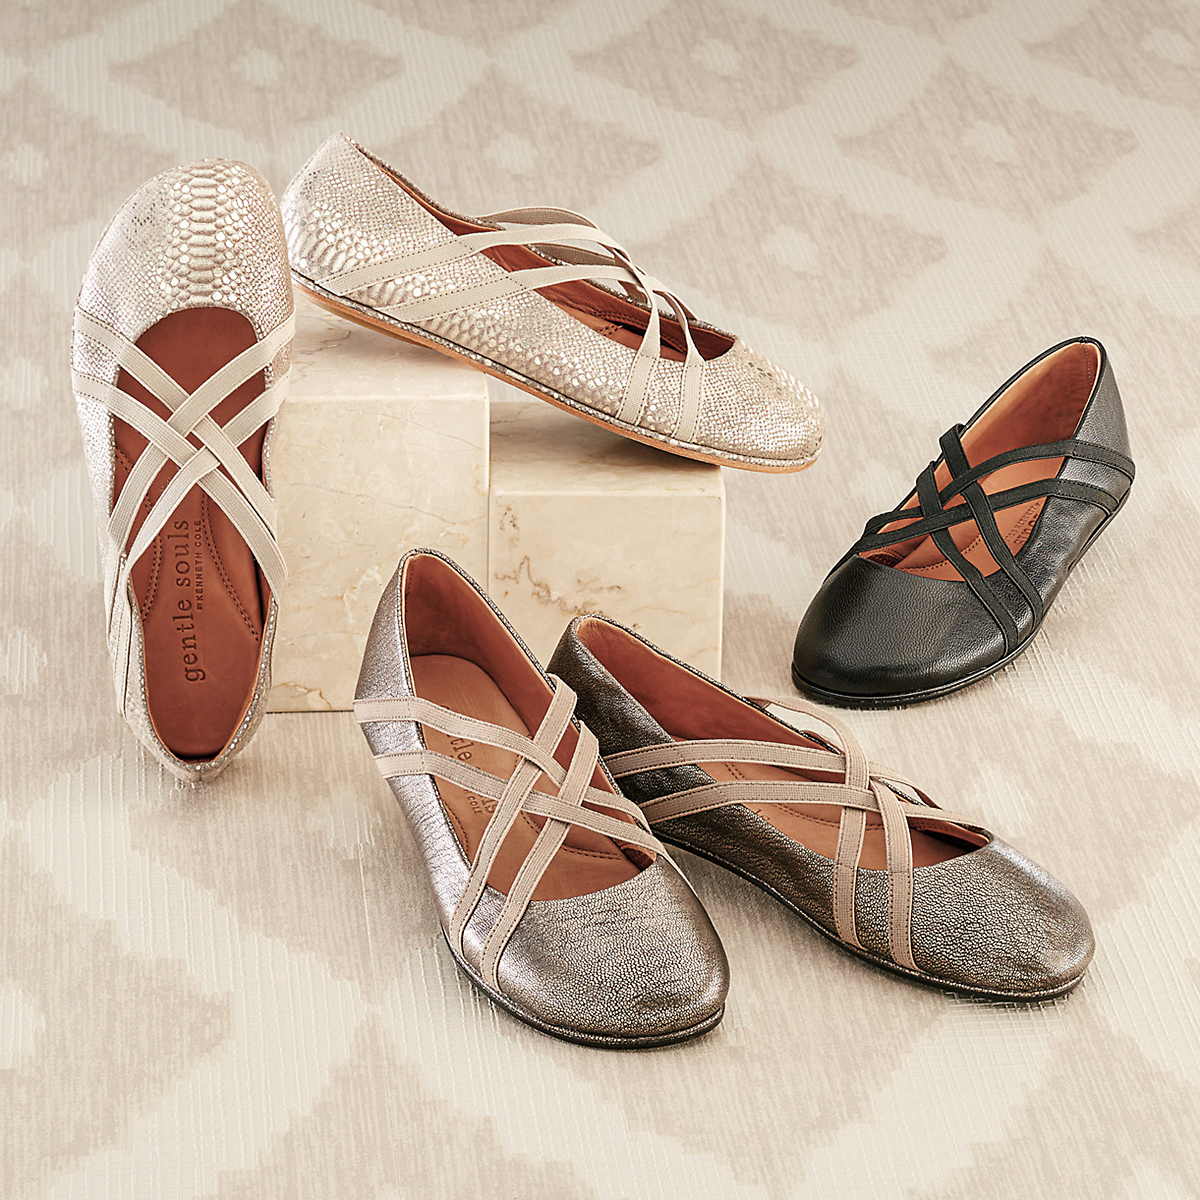 Gentle Souls Bay Braid Flats